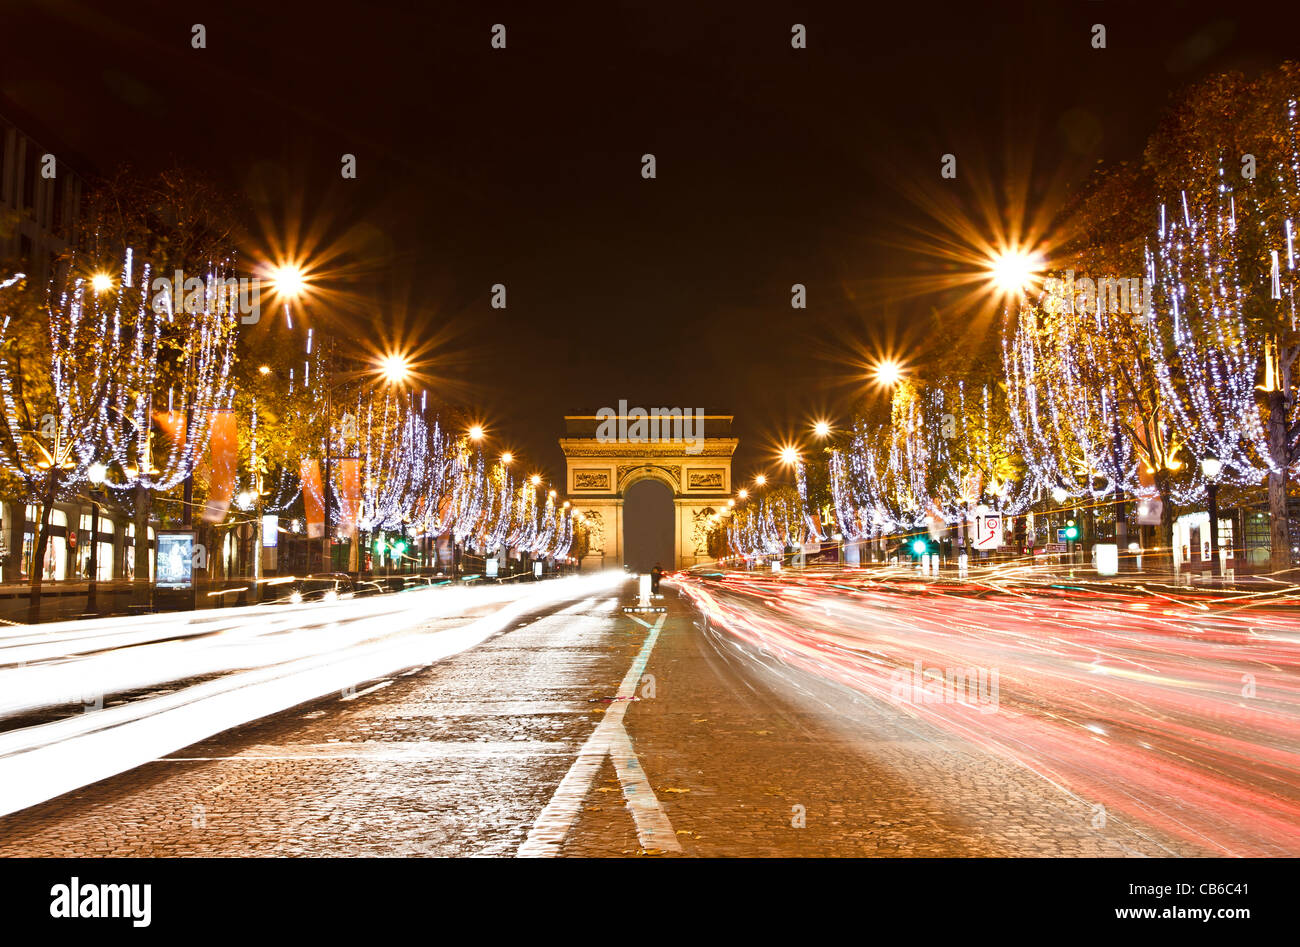 Champs Elysees light on for Christmas day - Stock Image